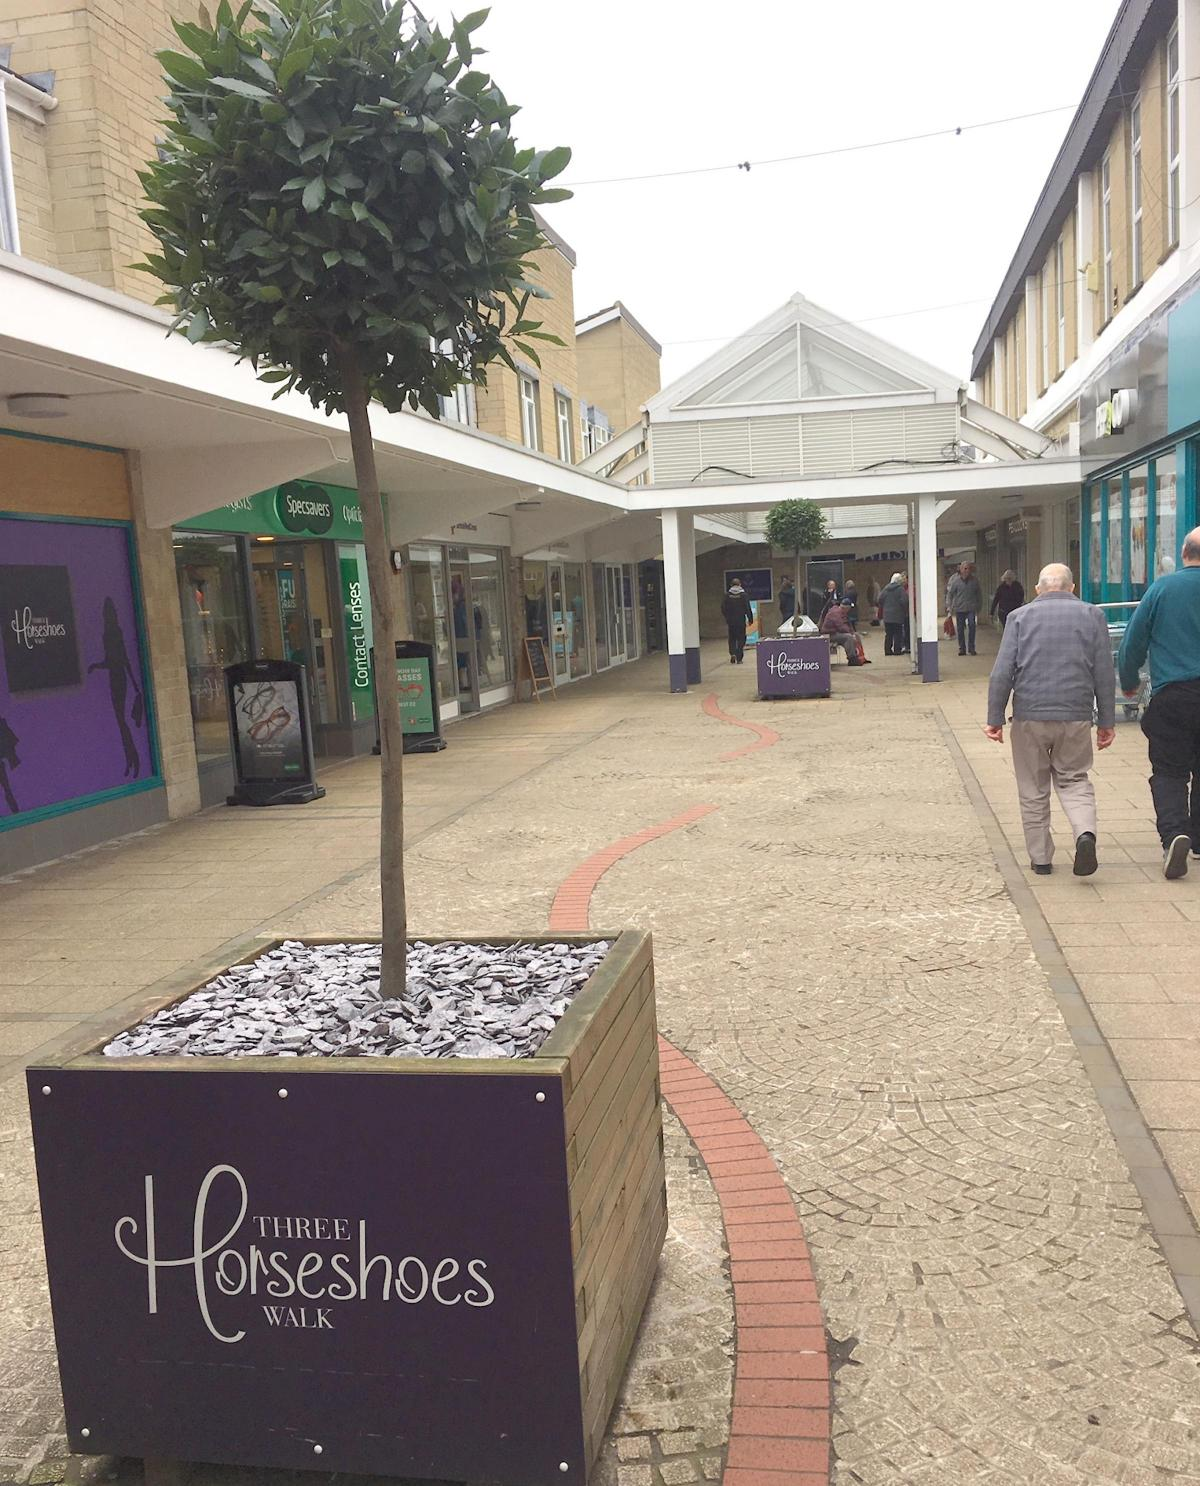 Two new stores plot moves to Three Horseshoes Shopping